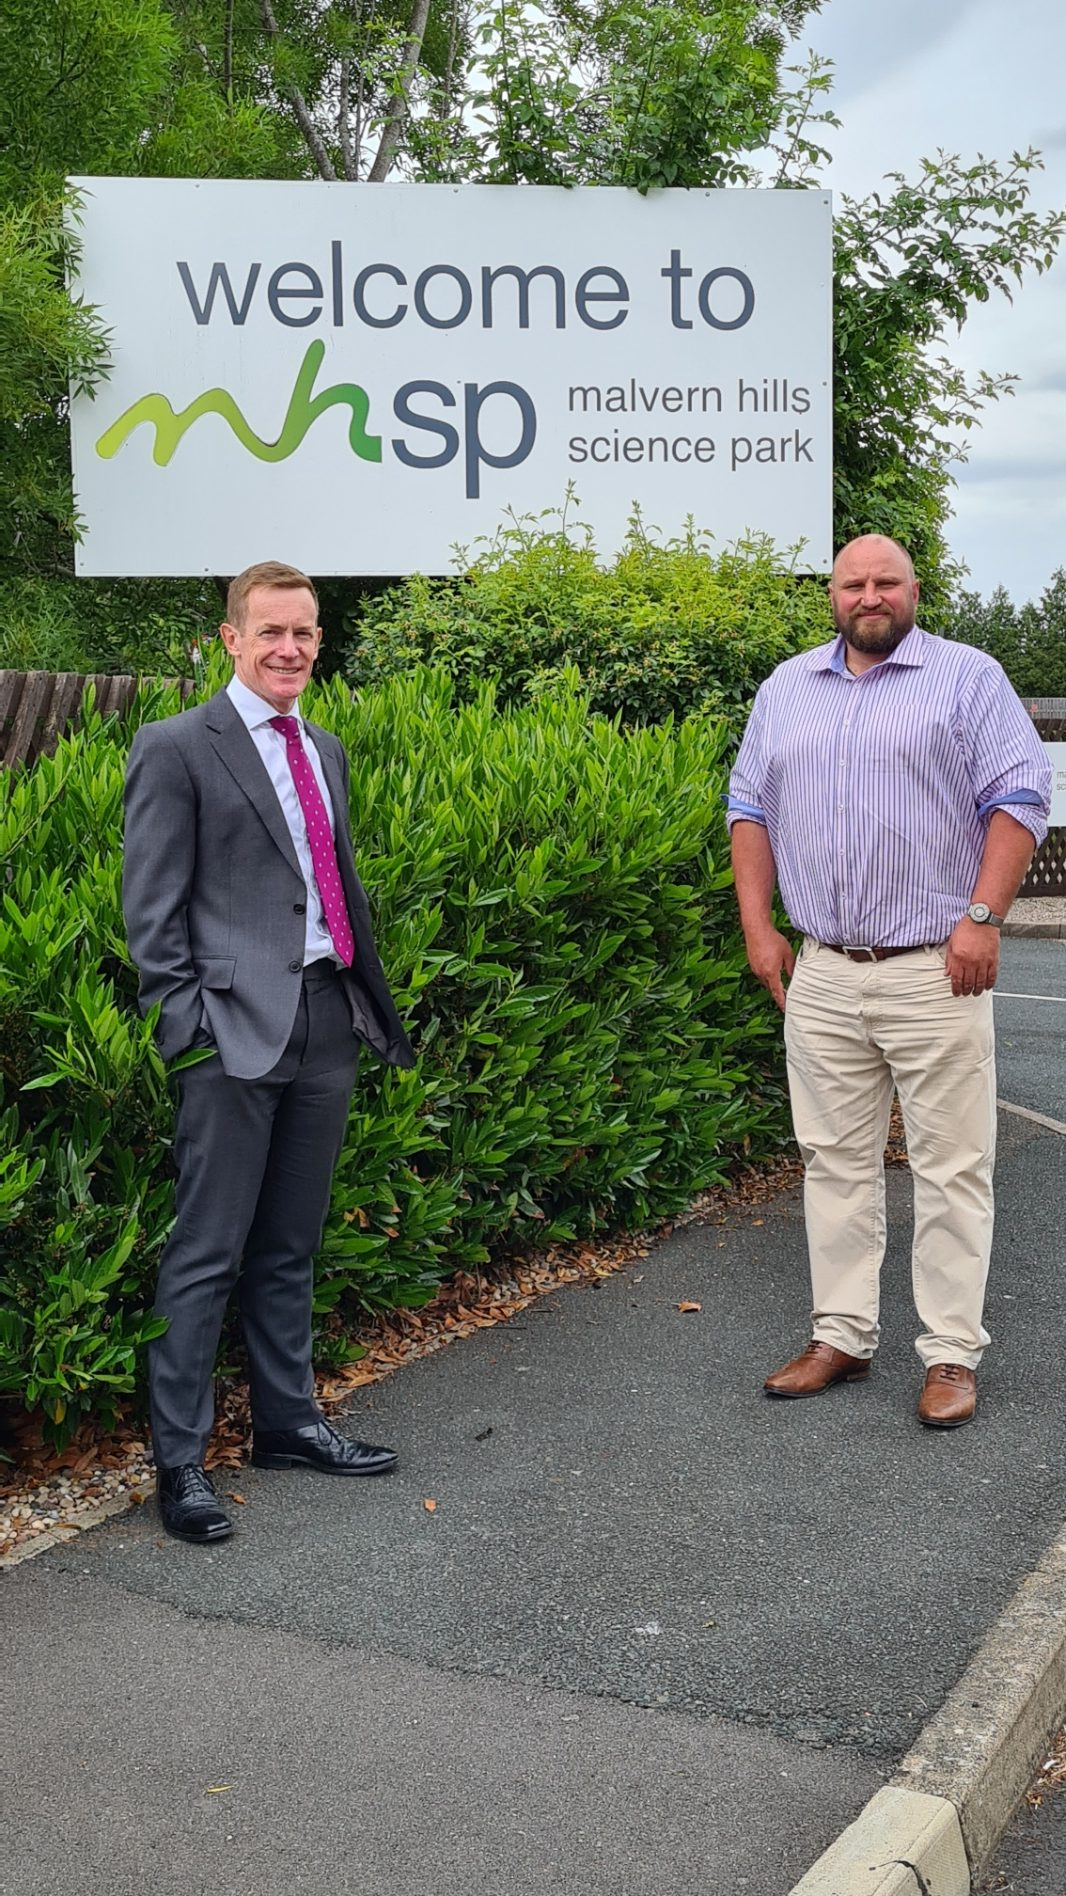 nexGworx to Drive Next Phase of Worcestershire 5G Journey, Enabling Smart Connected Manufacturing and Keeping Worcestershire at the Forefront of the Fourth Industrial Evolution